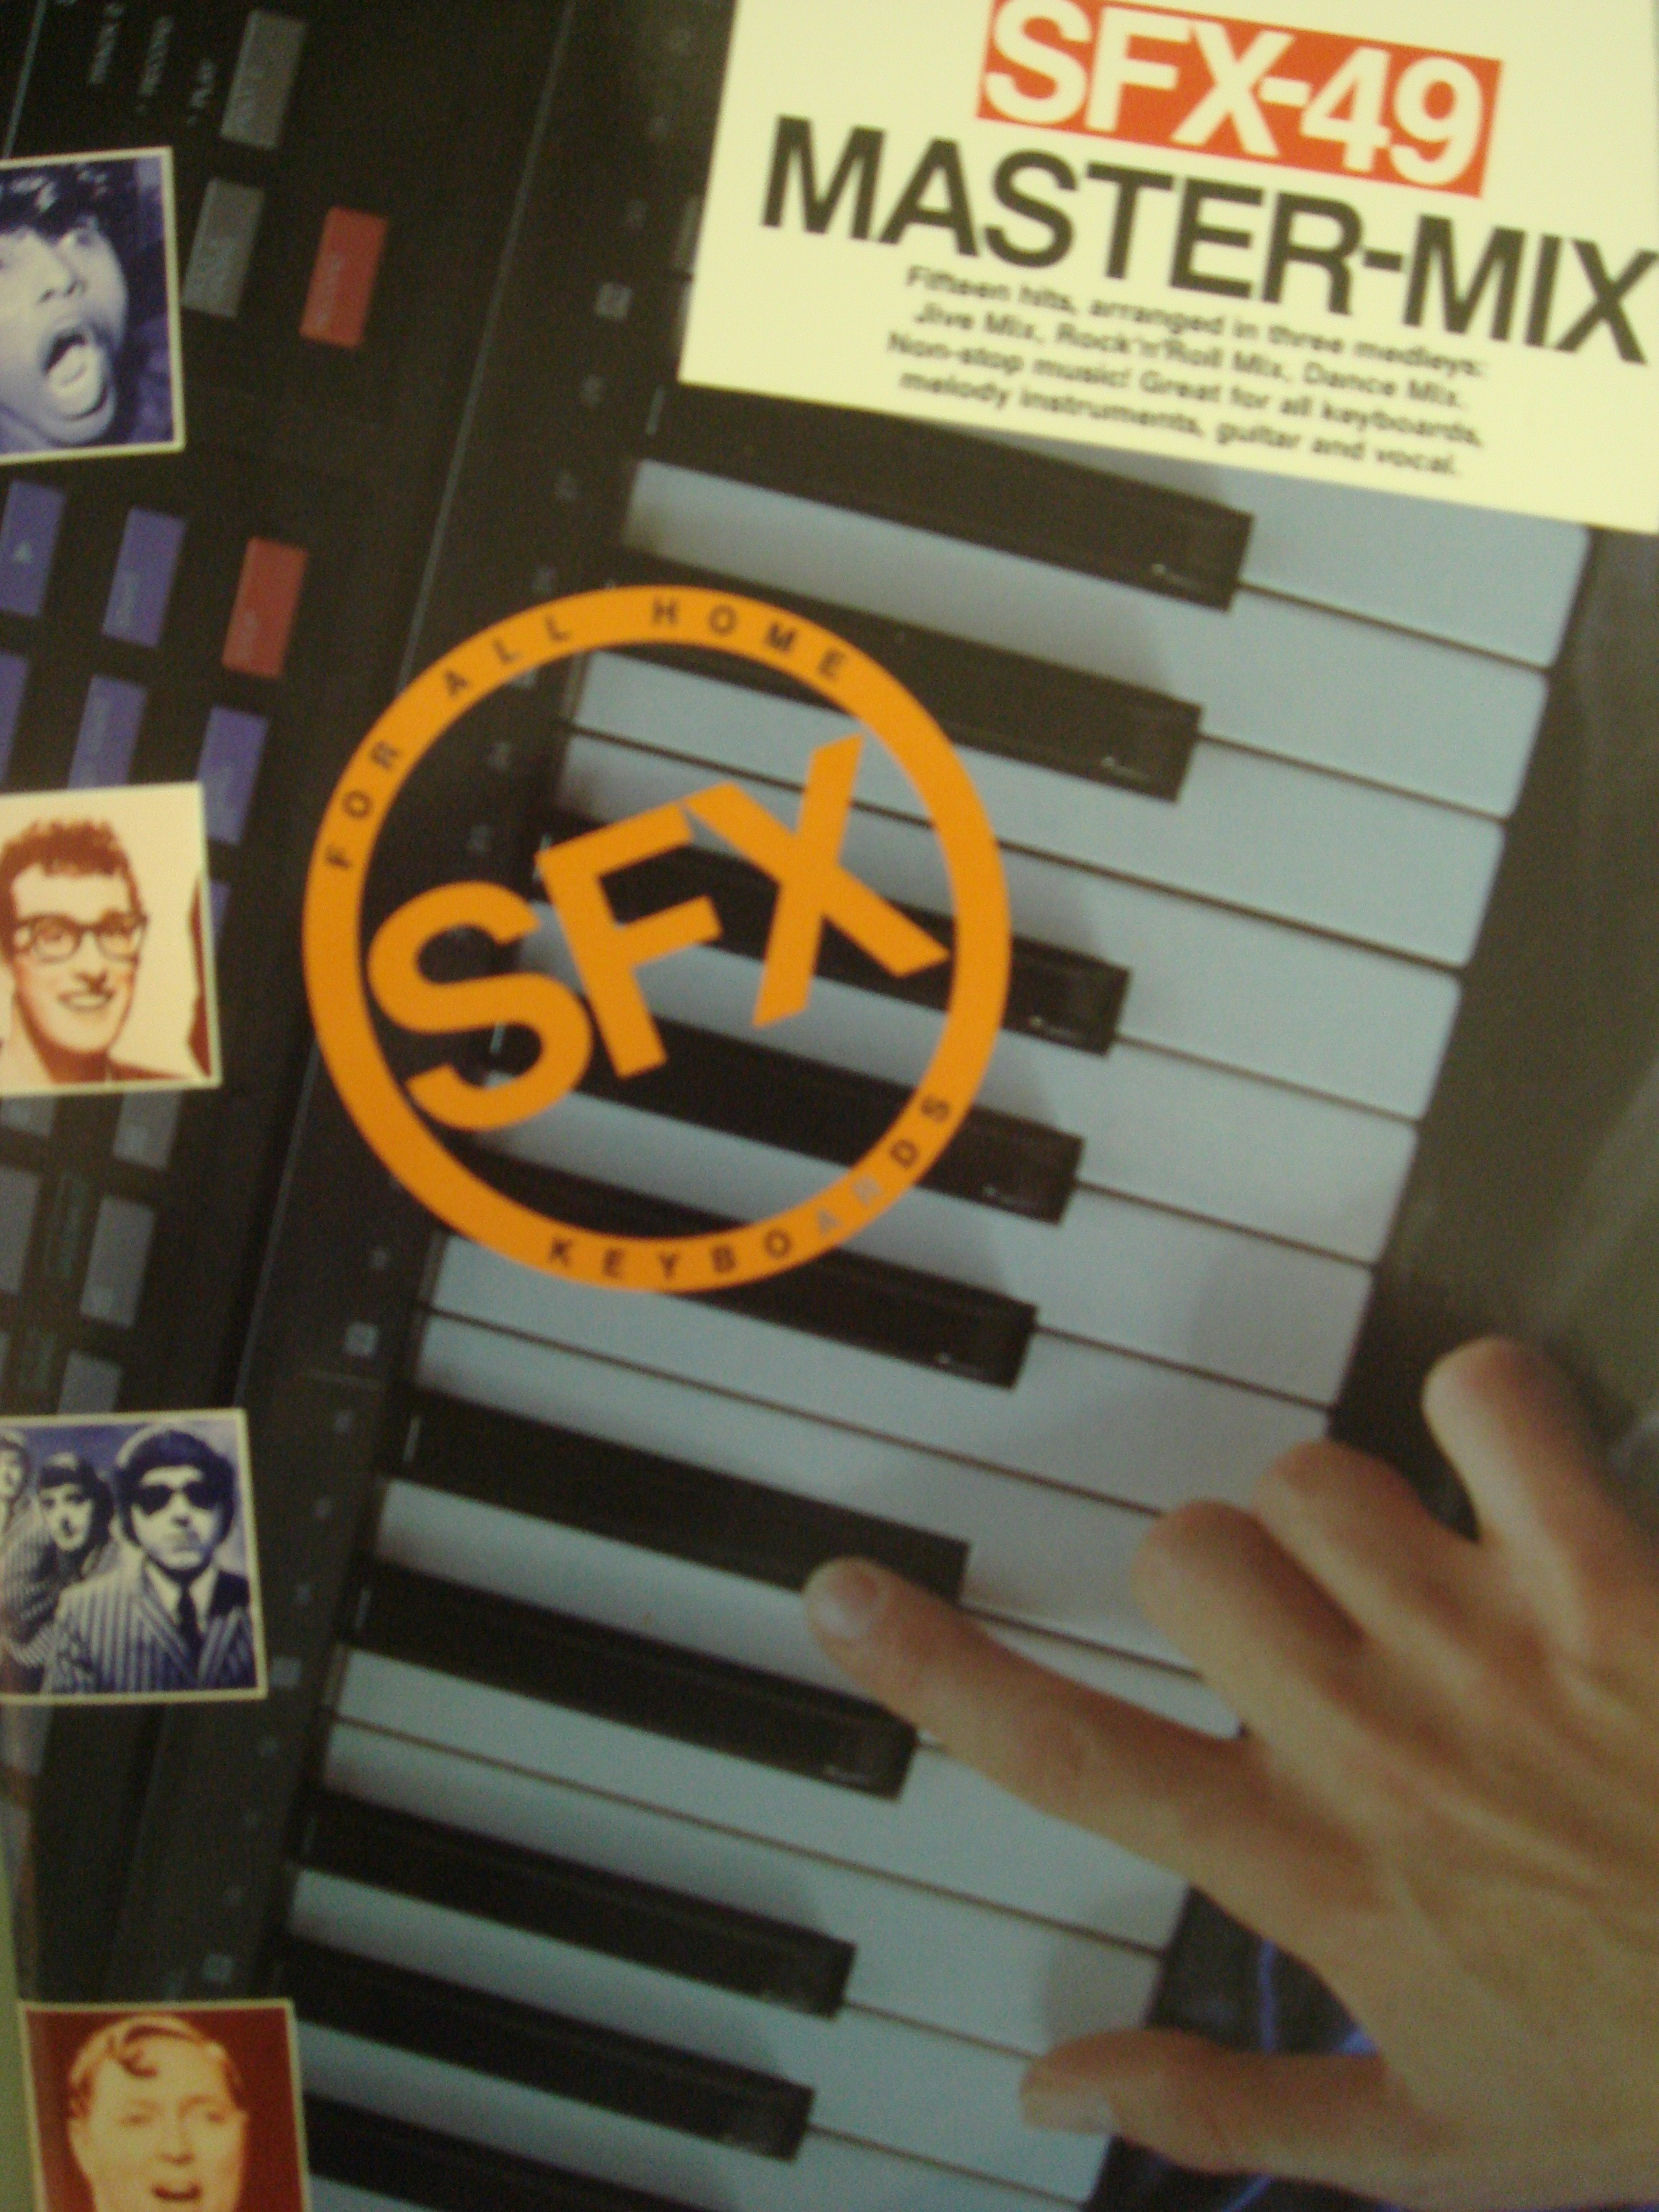 SFX-49 Master Mix Book Electronic Keyboard Guitar & Vocals 15 Hits in 3 Medleys S140